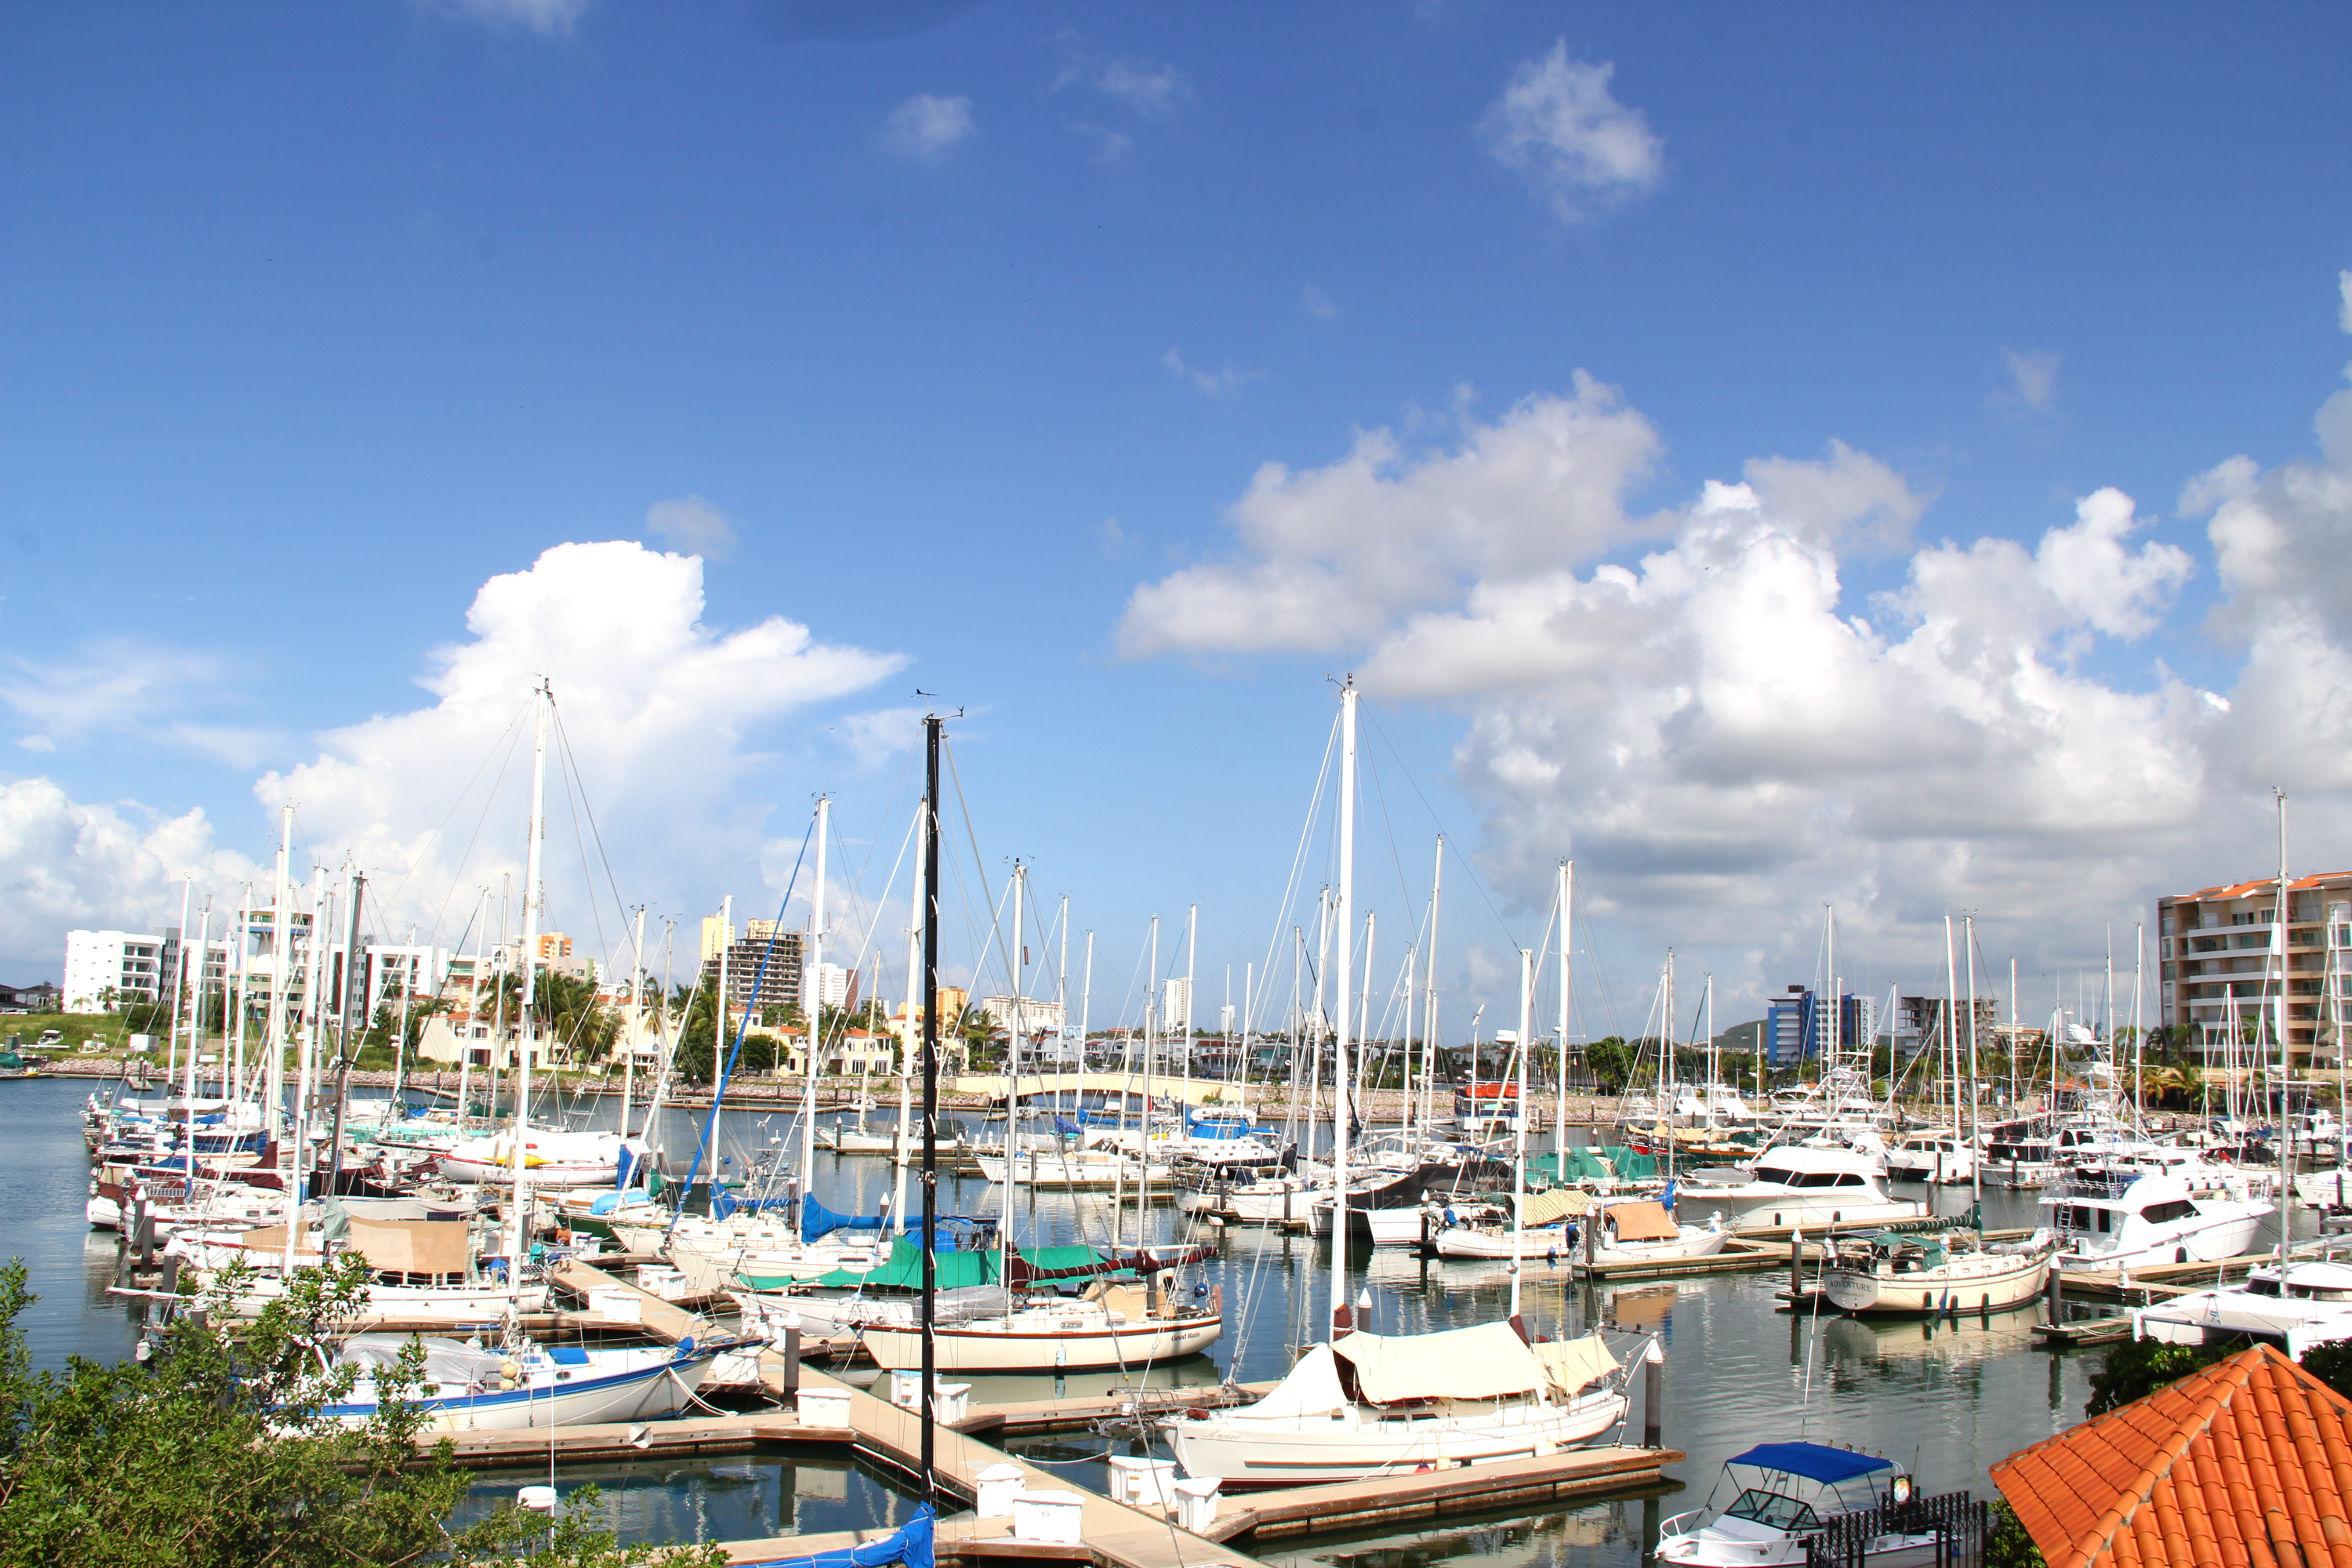 Marina views.